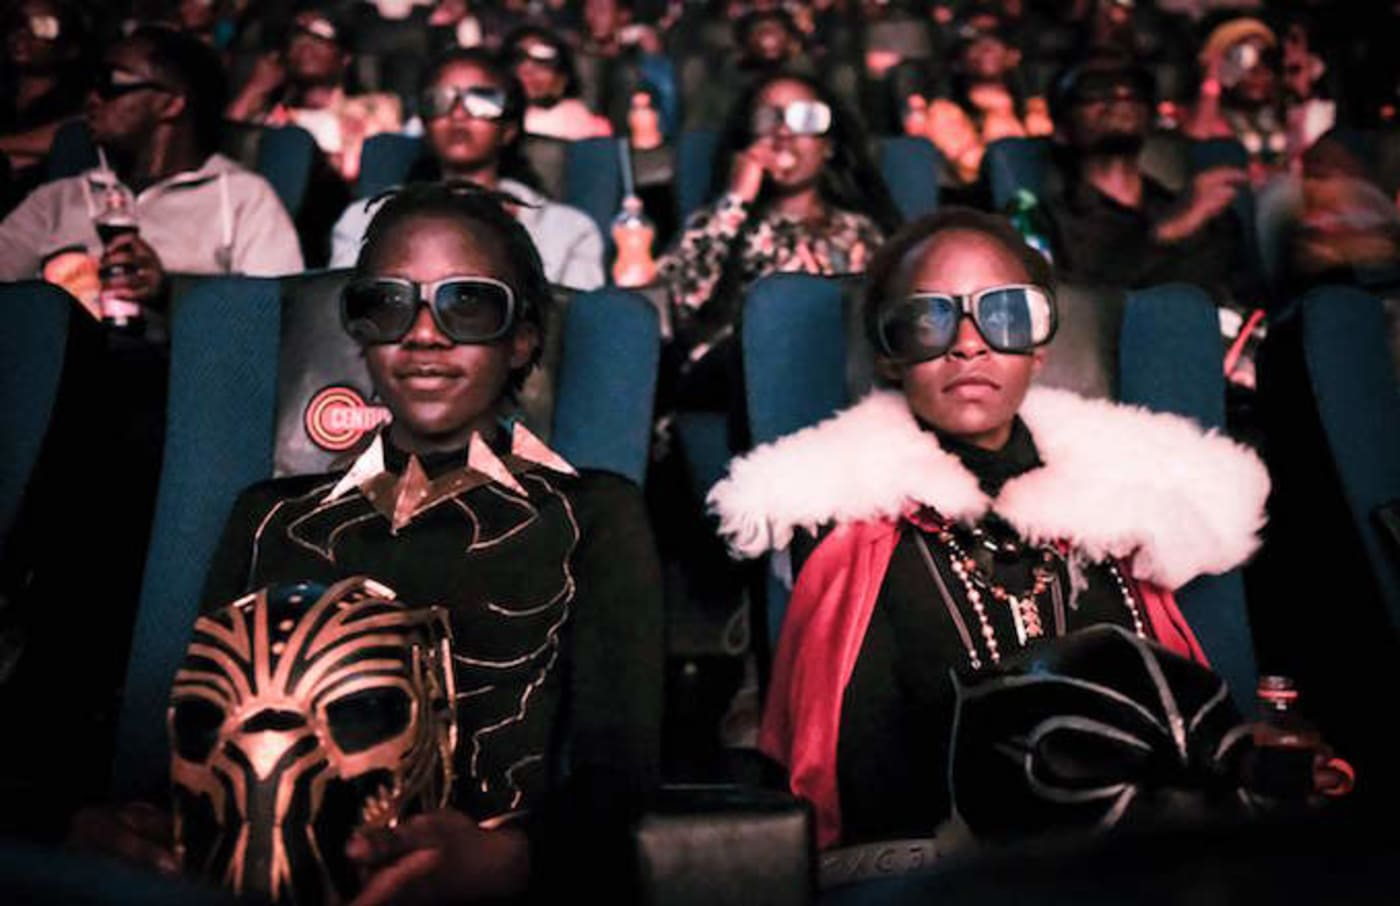 Cosplayers watching the film 'Black Panther' in 3D.